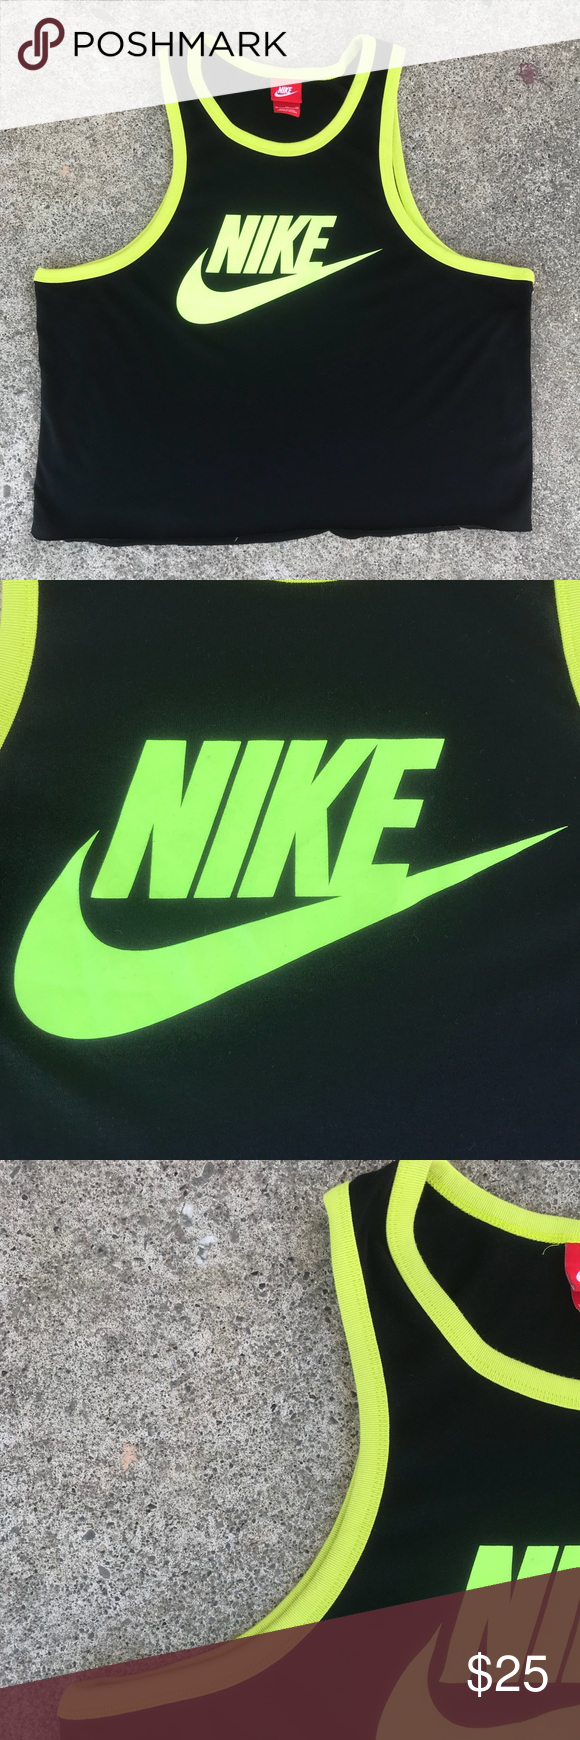 2847e13165f1c Reworked Nike Black/Neon Green Cropped Tank Top Add a pop of color to your  wardrobe with this ill nike crop tank. Size: XL Measurements: Pit to Pit:  22